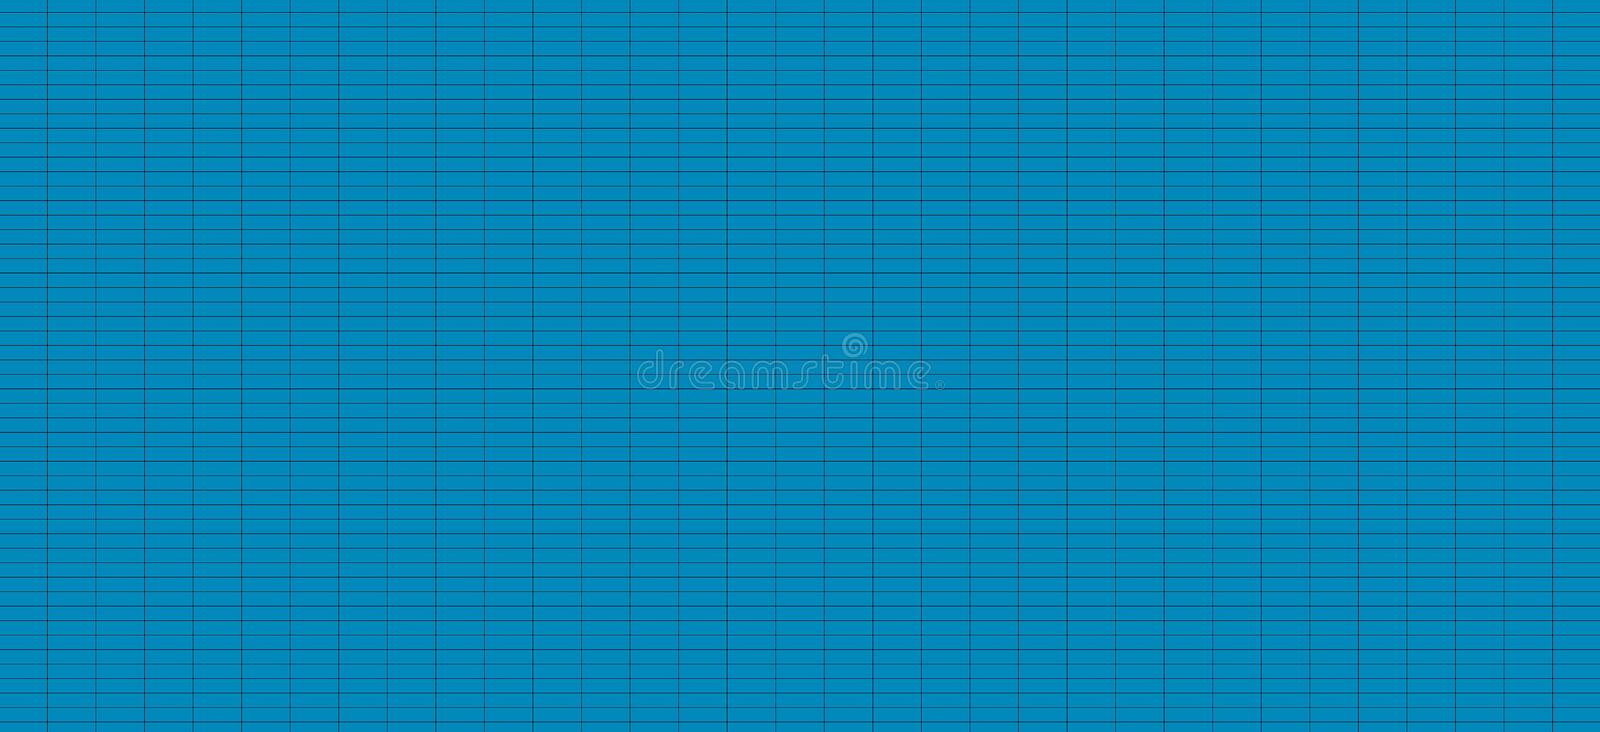 Grid line black with small gap - Seamless schedule chart table square checkered texture grid blue background Abstract Striped royalty free illustration